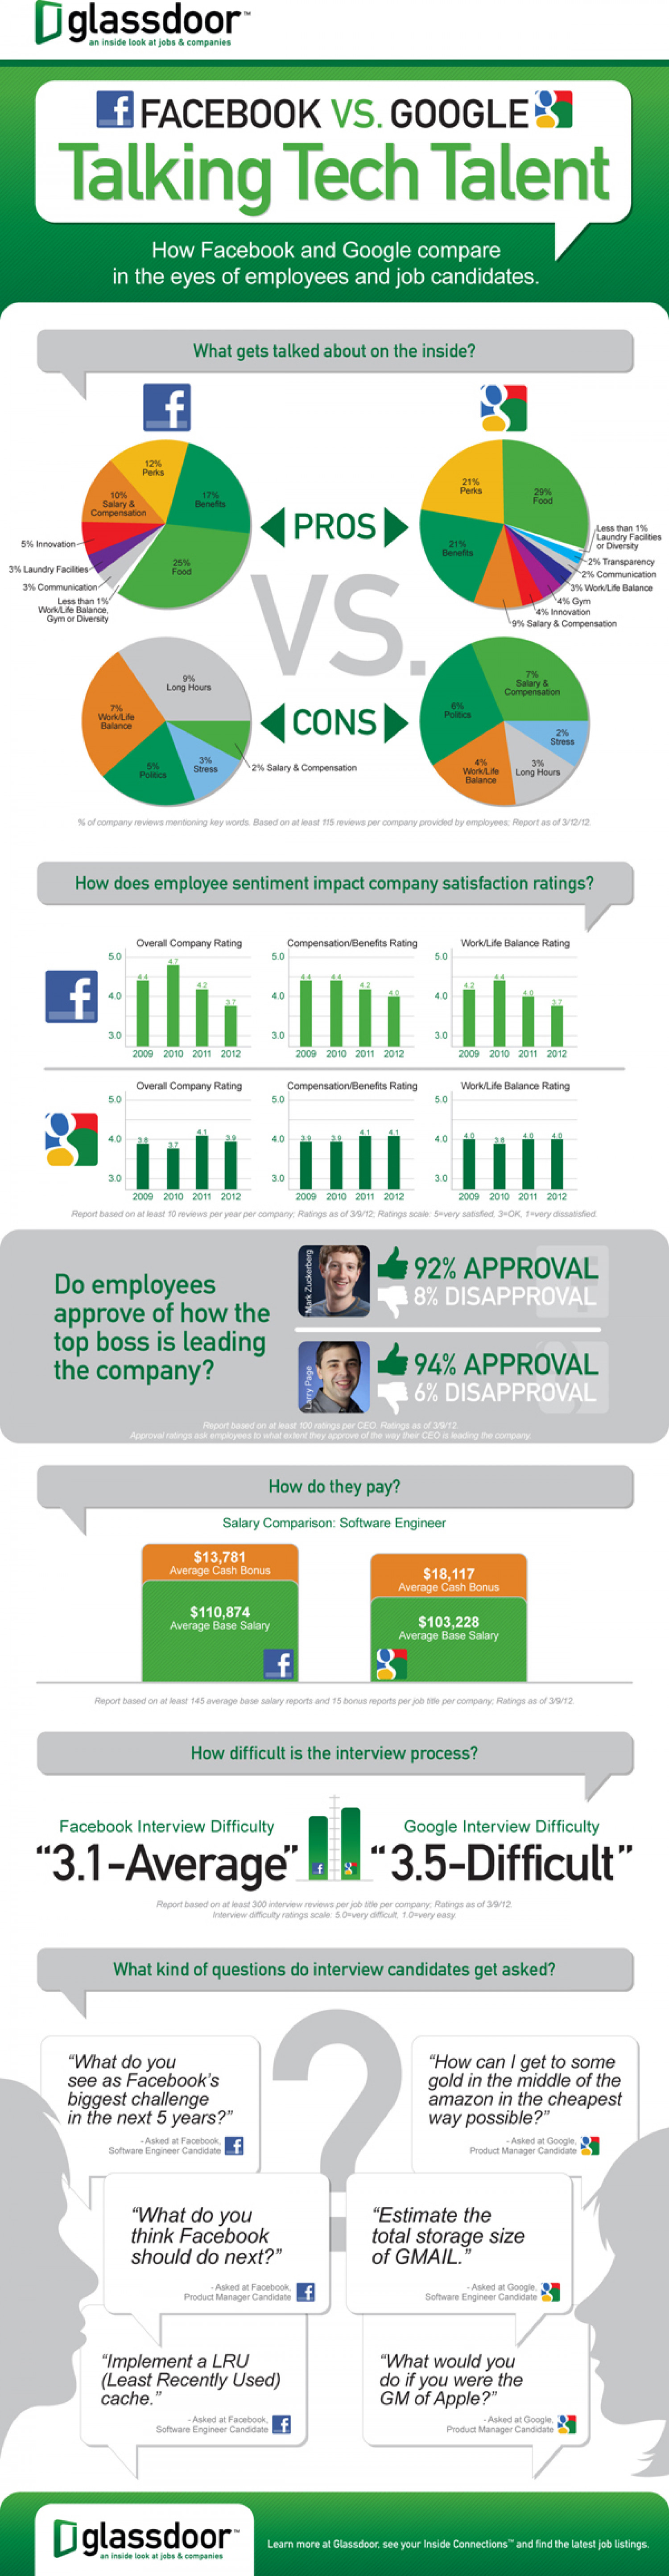 Facebook vs. Google: Talking Tech Talent Infographic